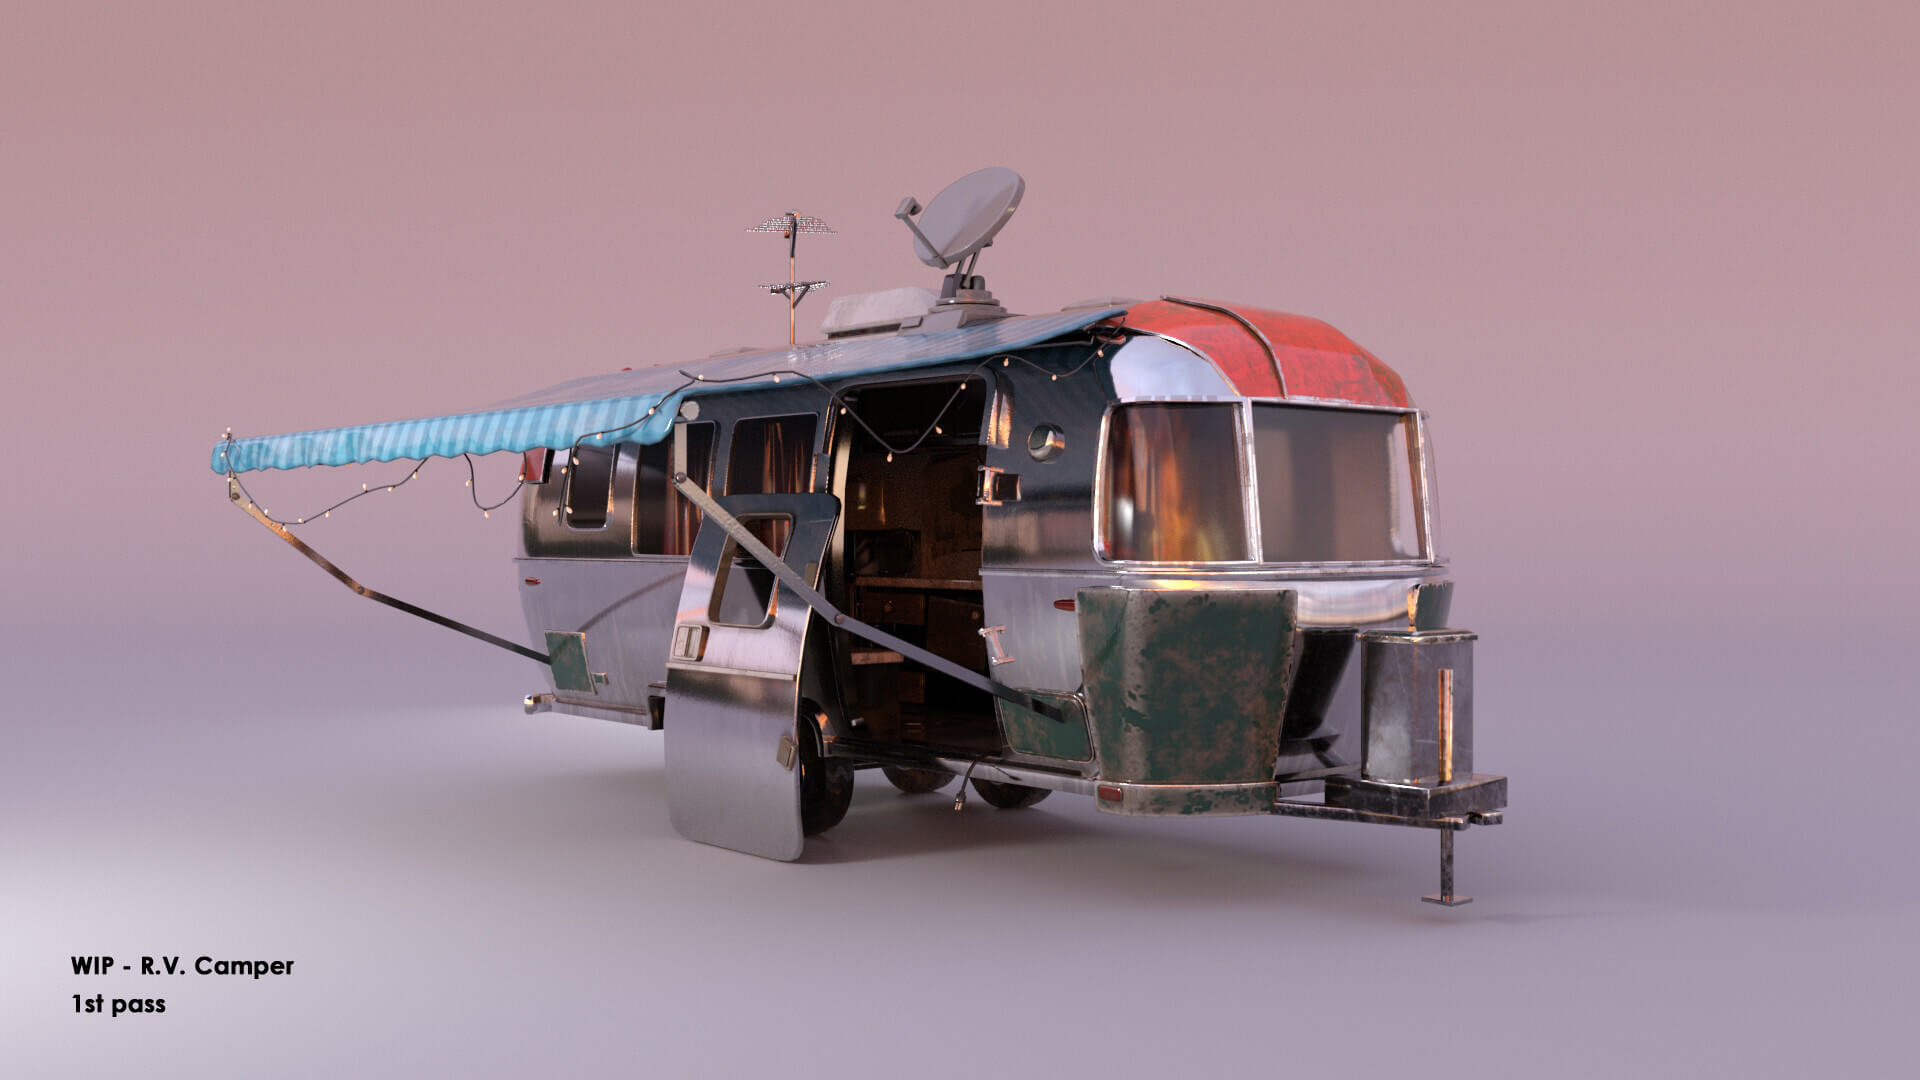 CG model of a travel trailer and extended canopy